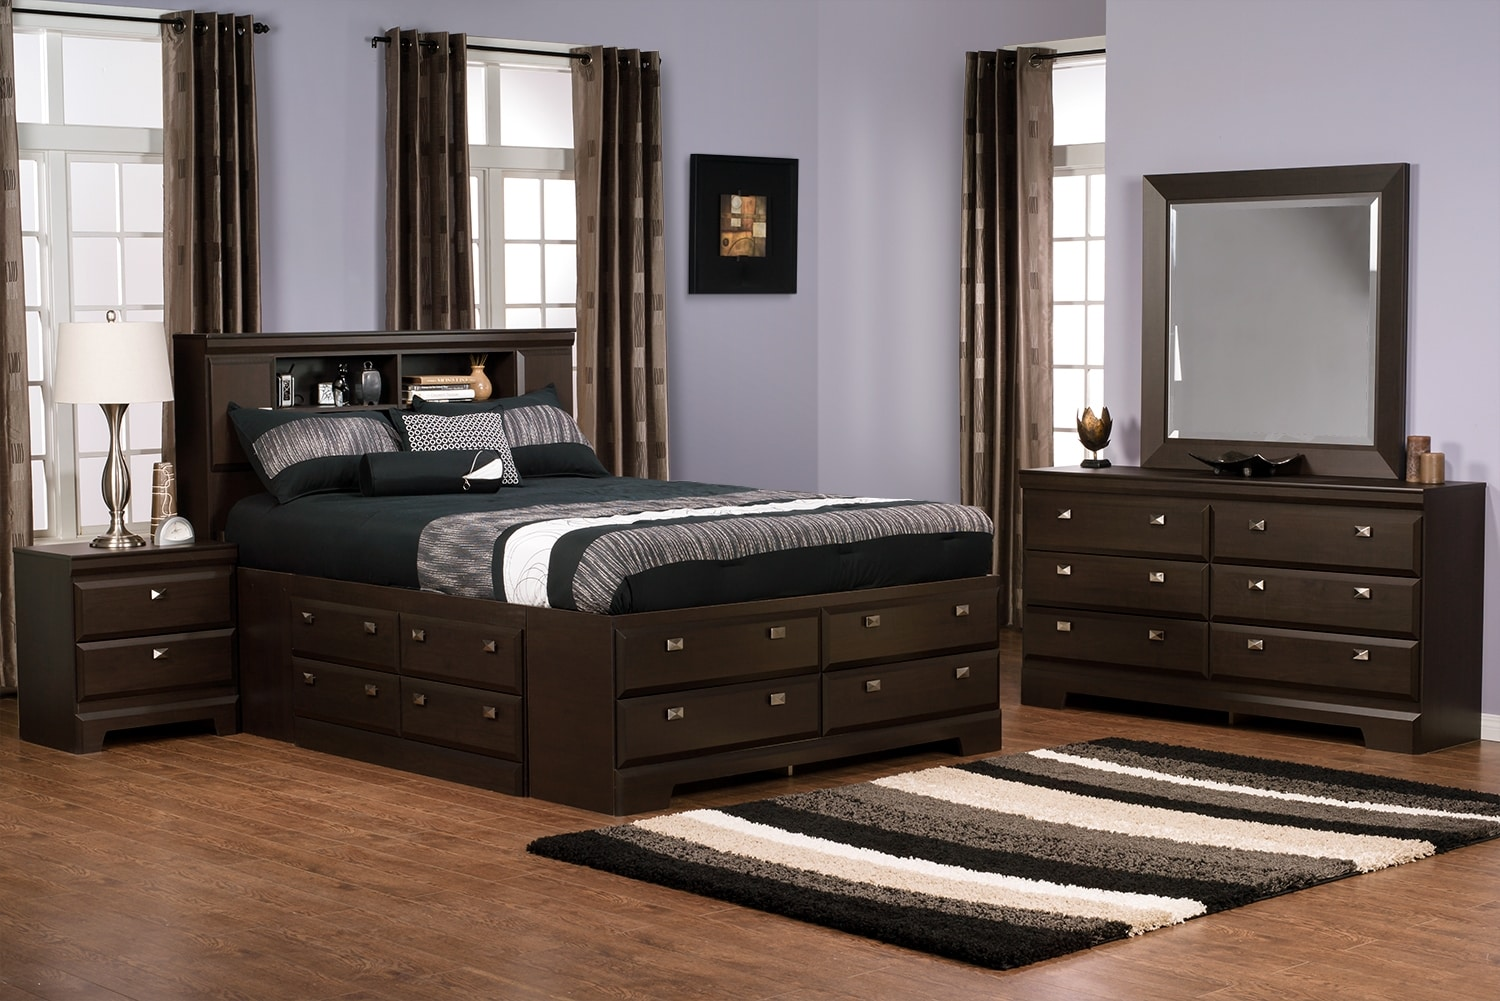 Bedroom Furniture - Yorkdale 6-Piece Full Bookcase Storage Bedroom Package